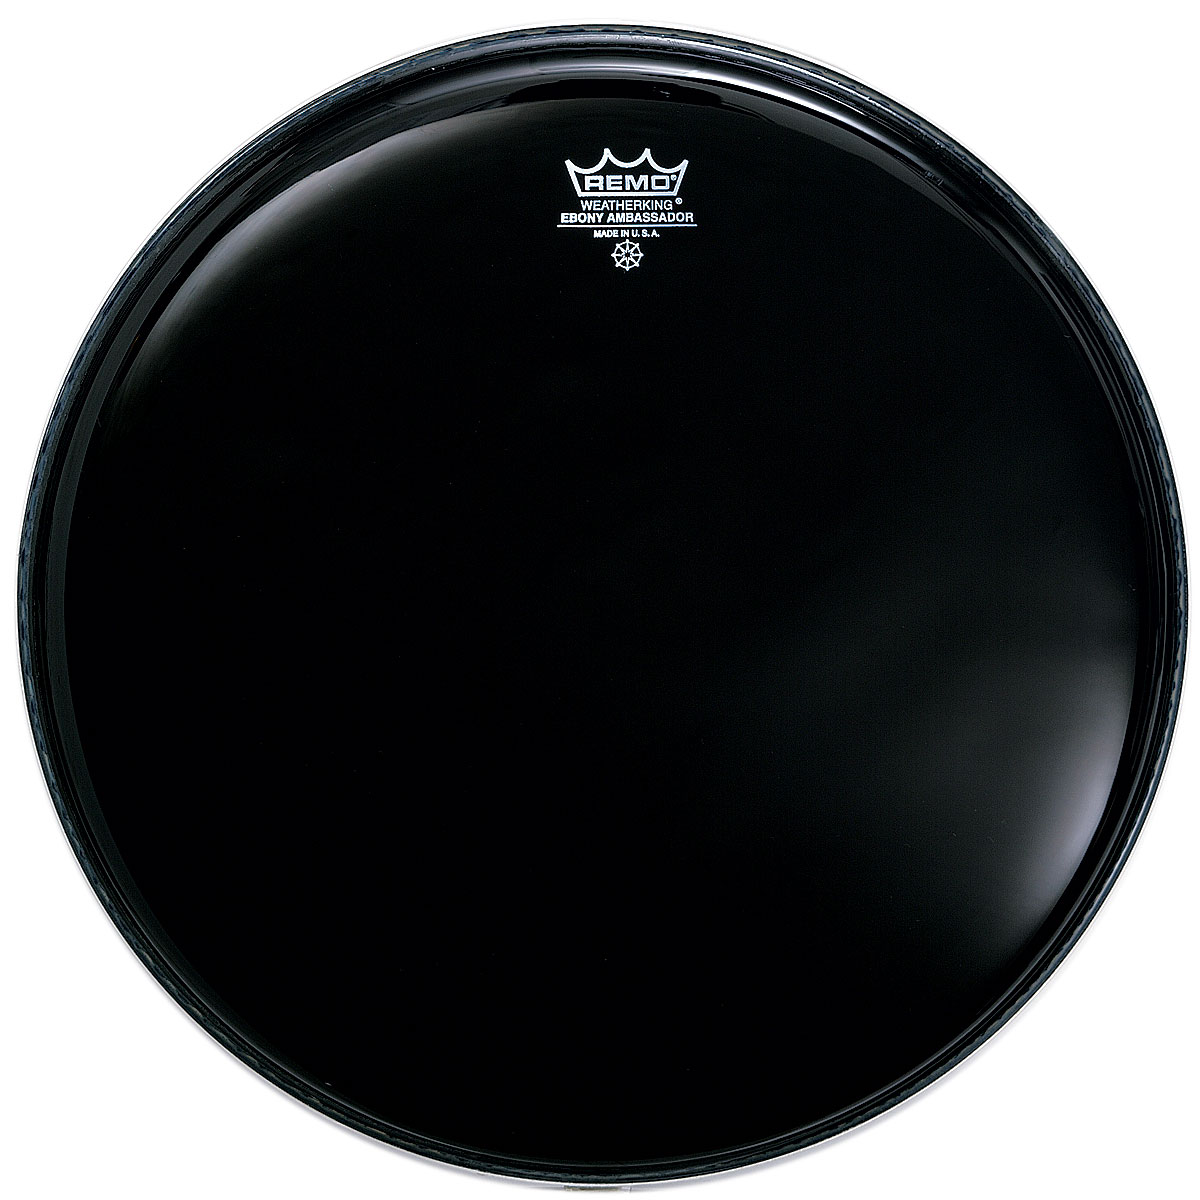 "Remo 15"" Ambassador Ebony Drum Head"